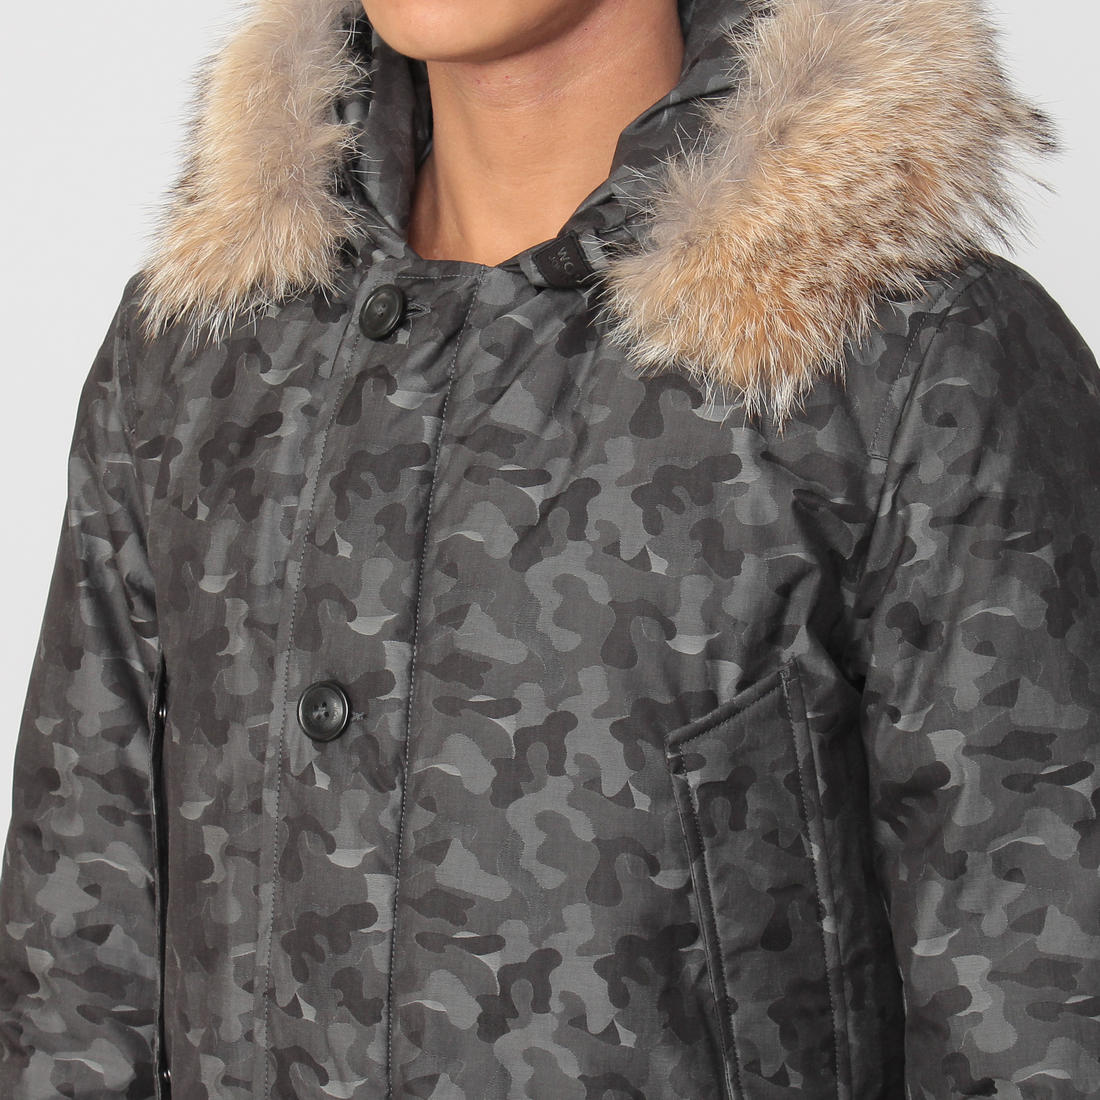 Barneys New York Arctic Parka 1170654: Grey